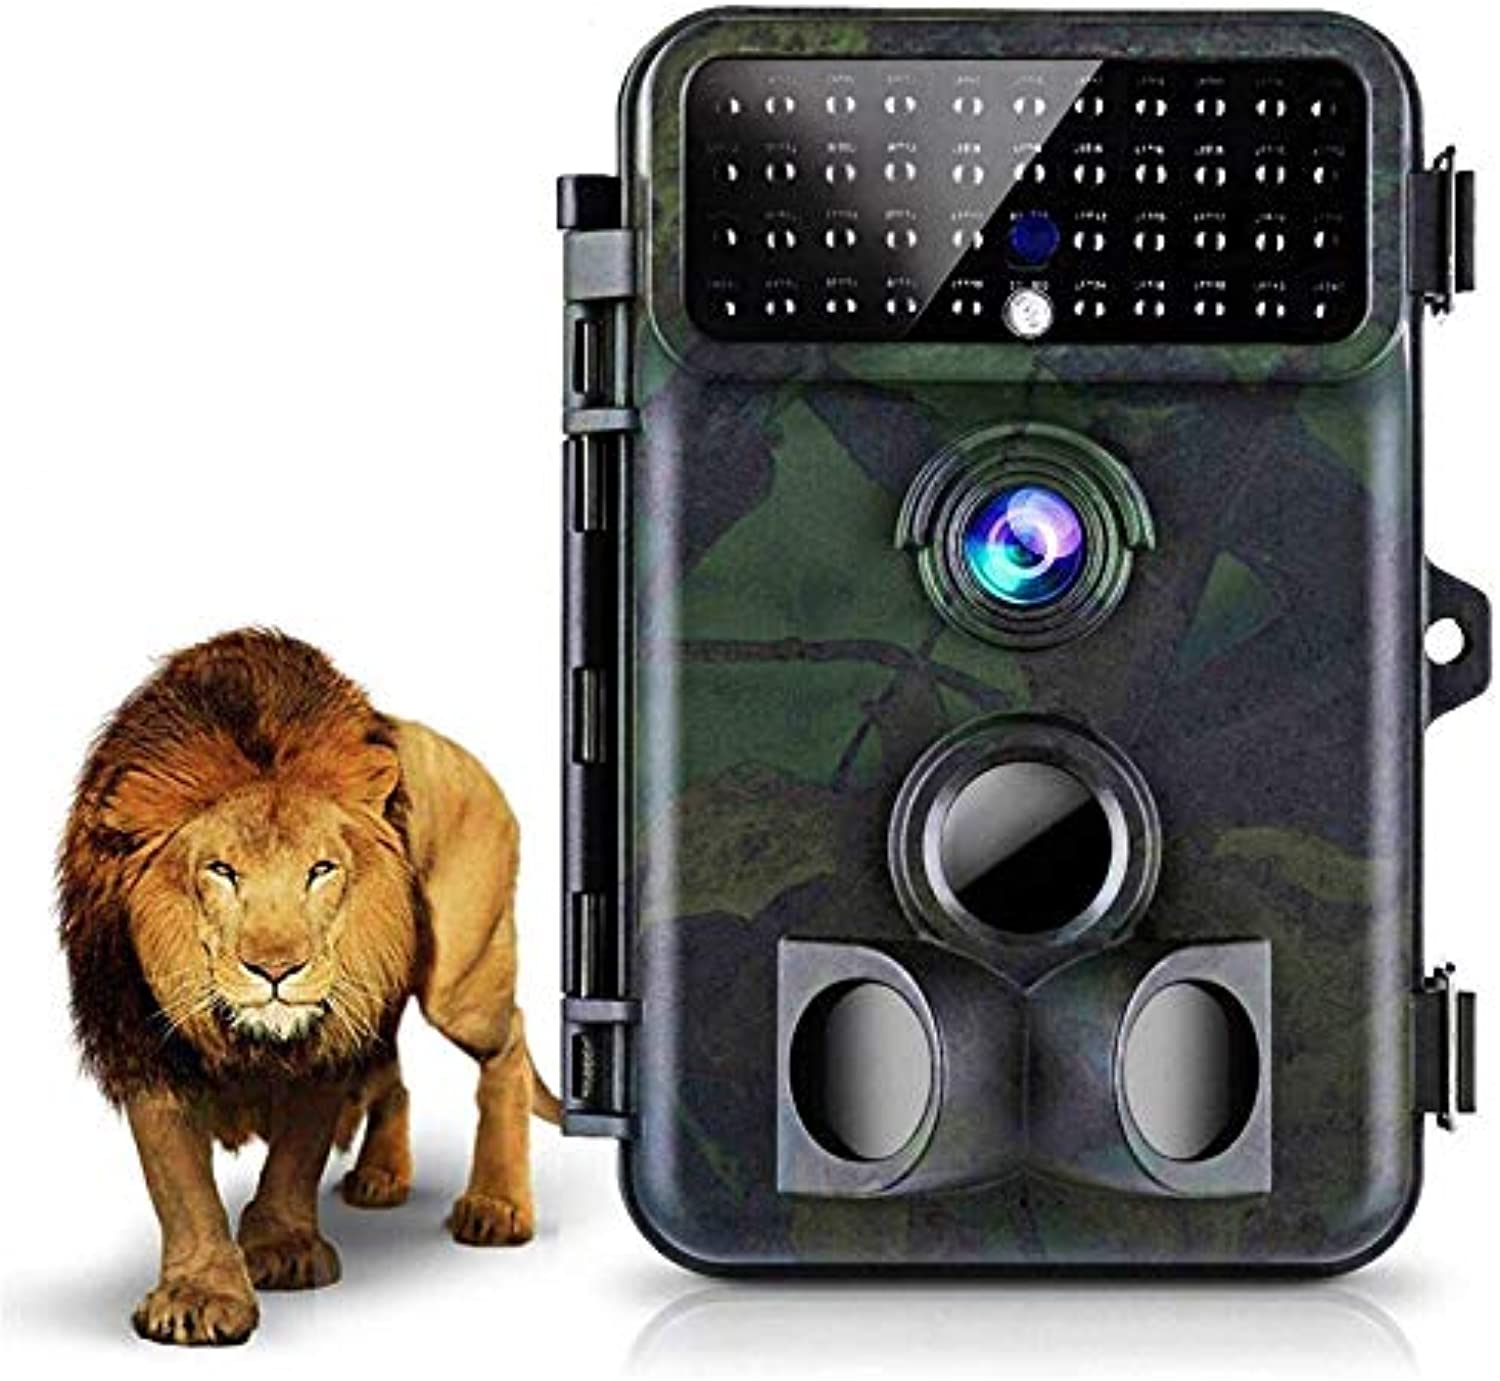 Tvird Trail Camera 16MP 1080P Wildlife Camera Super Night Vision Hunting Camera 125° Detecting Range and 66 FT Motion Activated with 2.4'' LCD Display IP66 Waterproof Predected Design